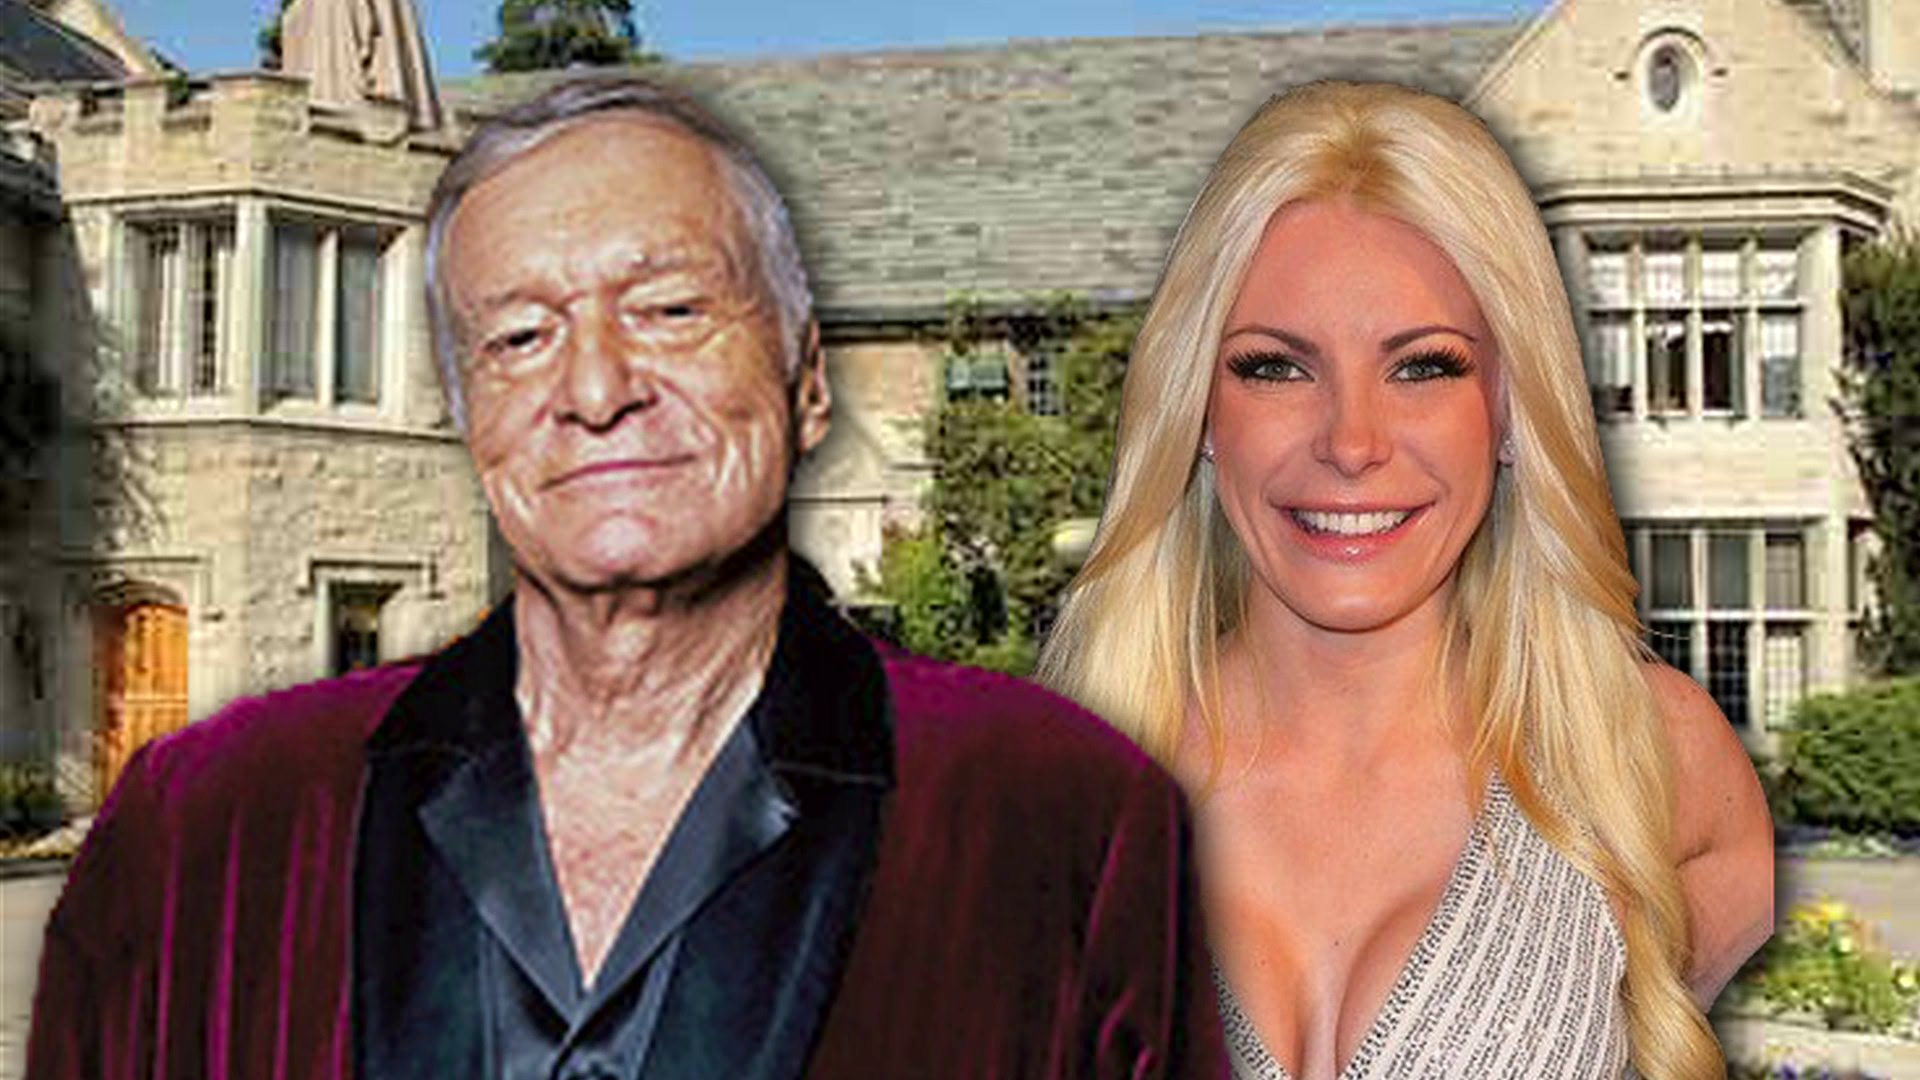 Hugh Hefner drops $5 million on house for wife Crystal Harris